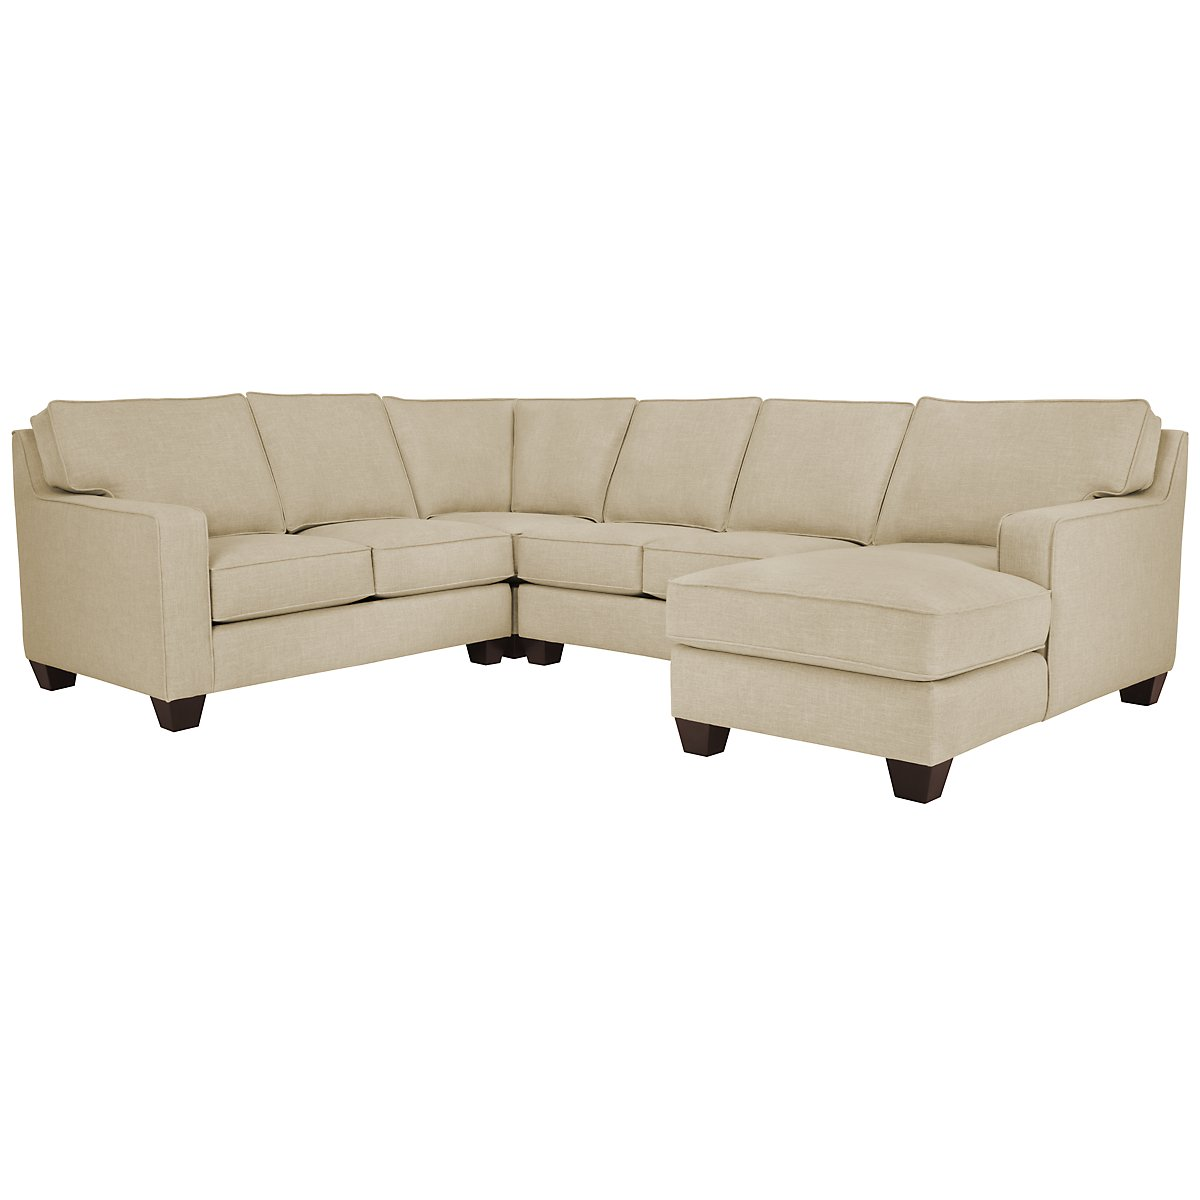 York Beige Fabric Medium Right Chaise Sectional